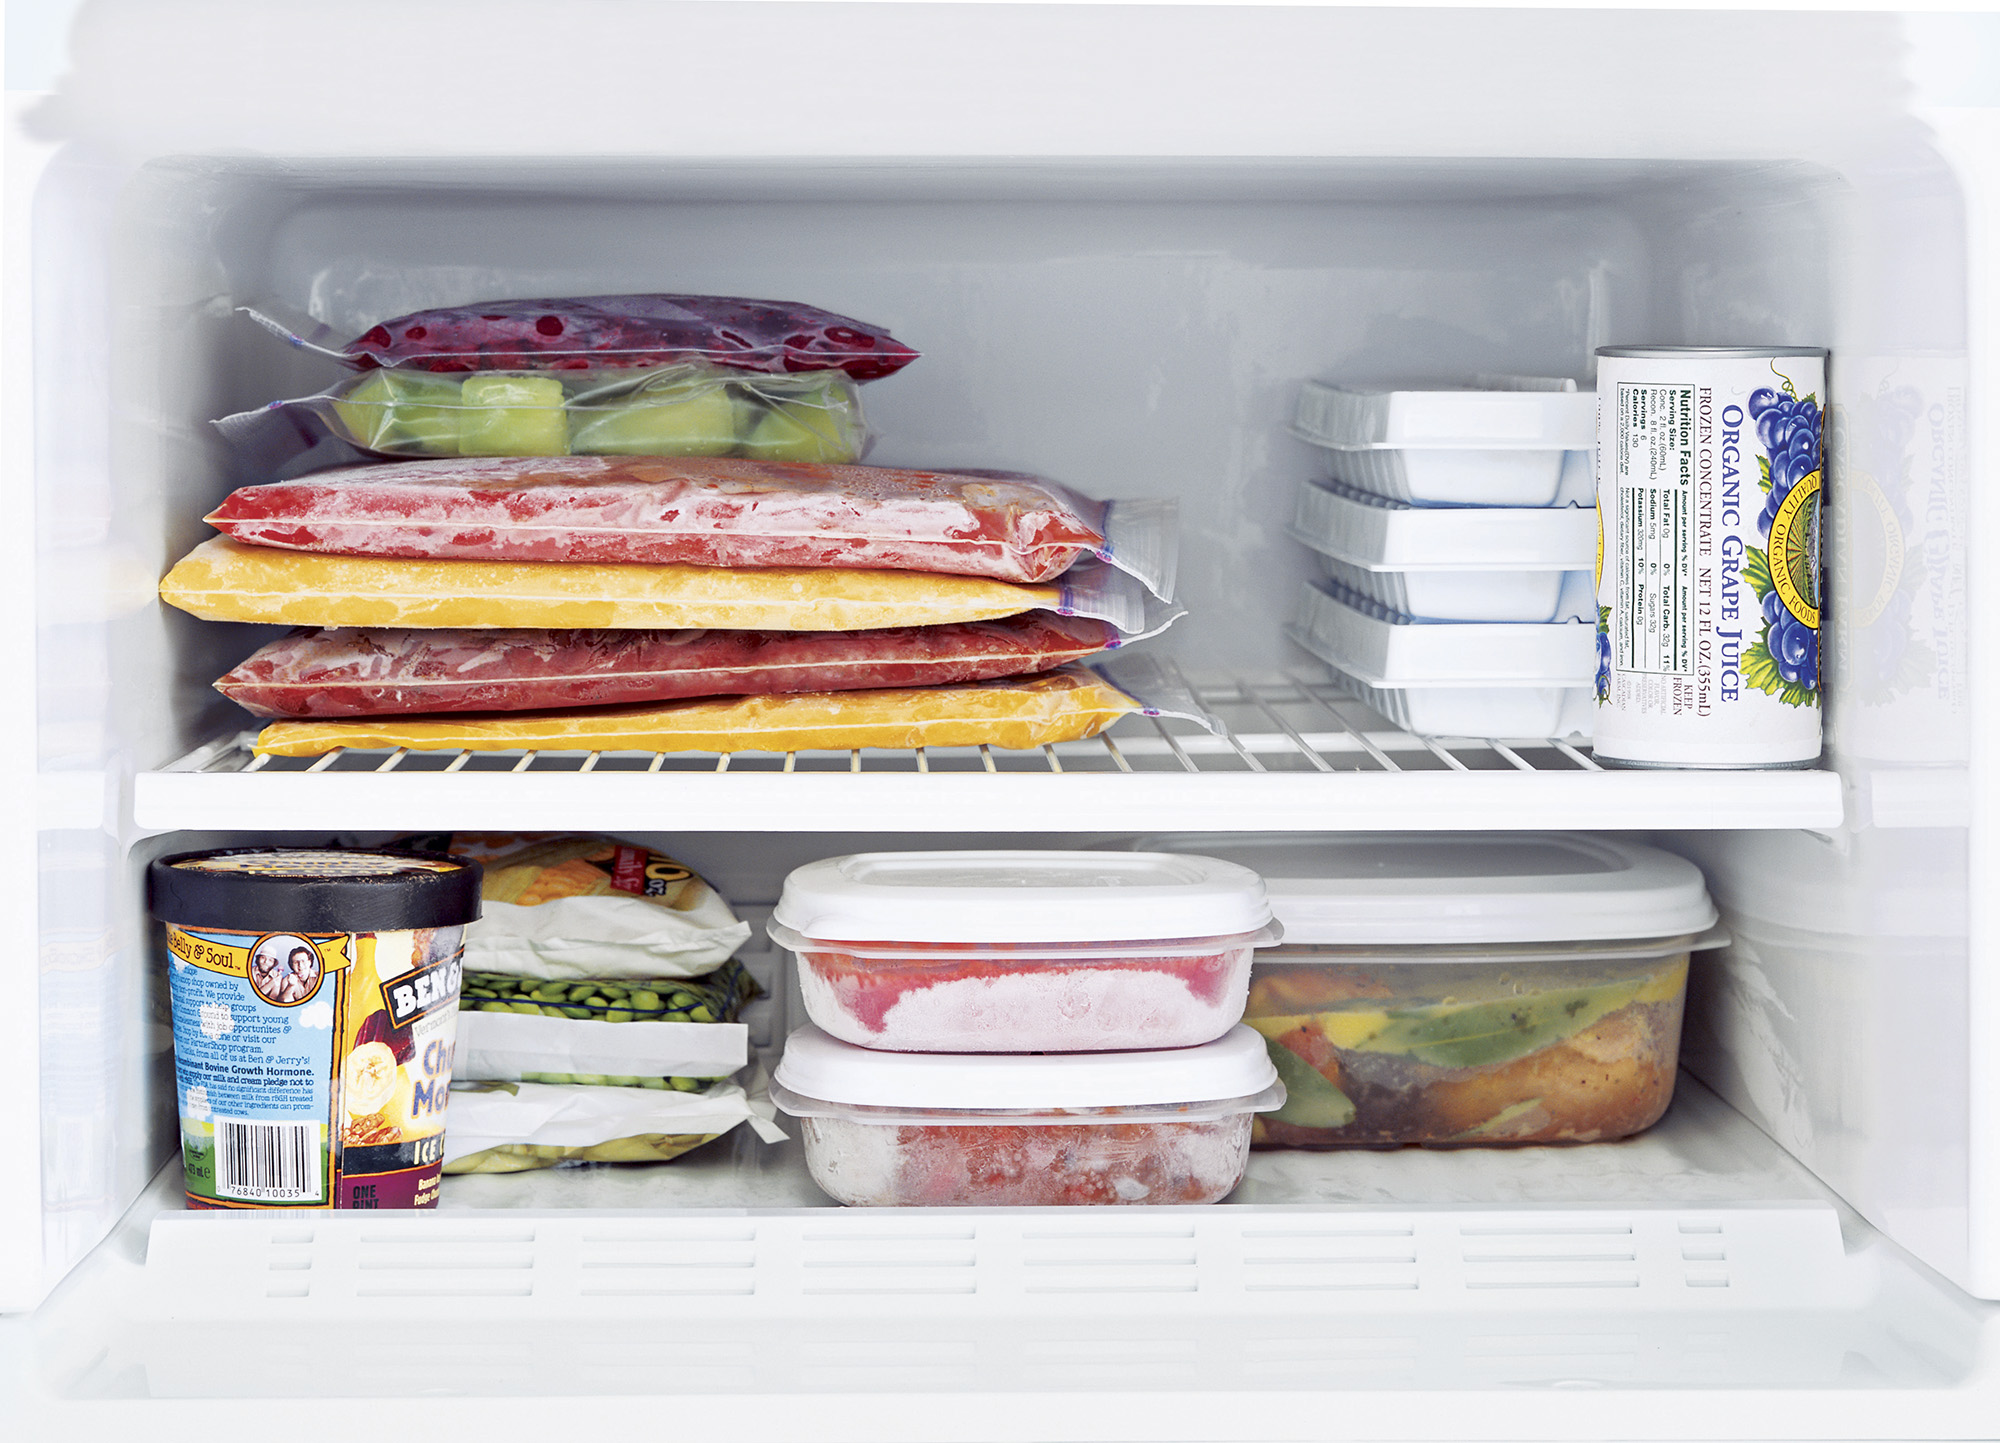 Freezer interior with frozen dinners, ziploc items, ice tray